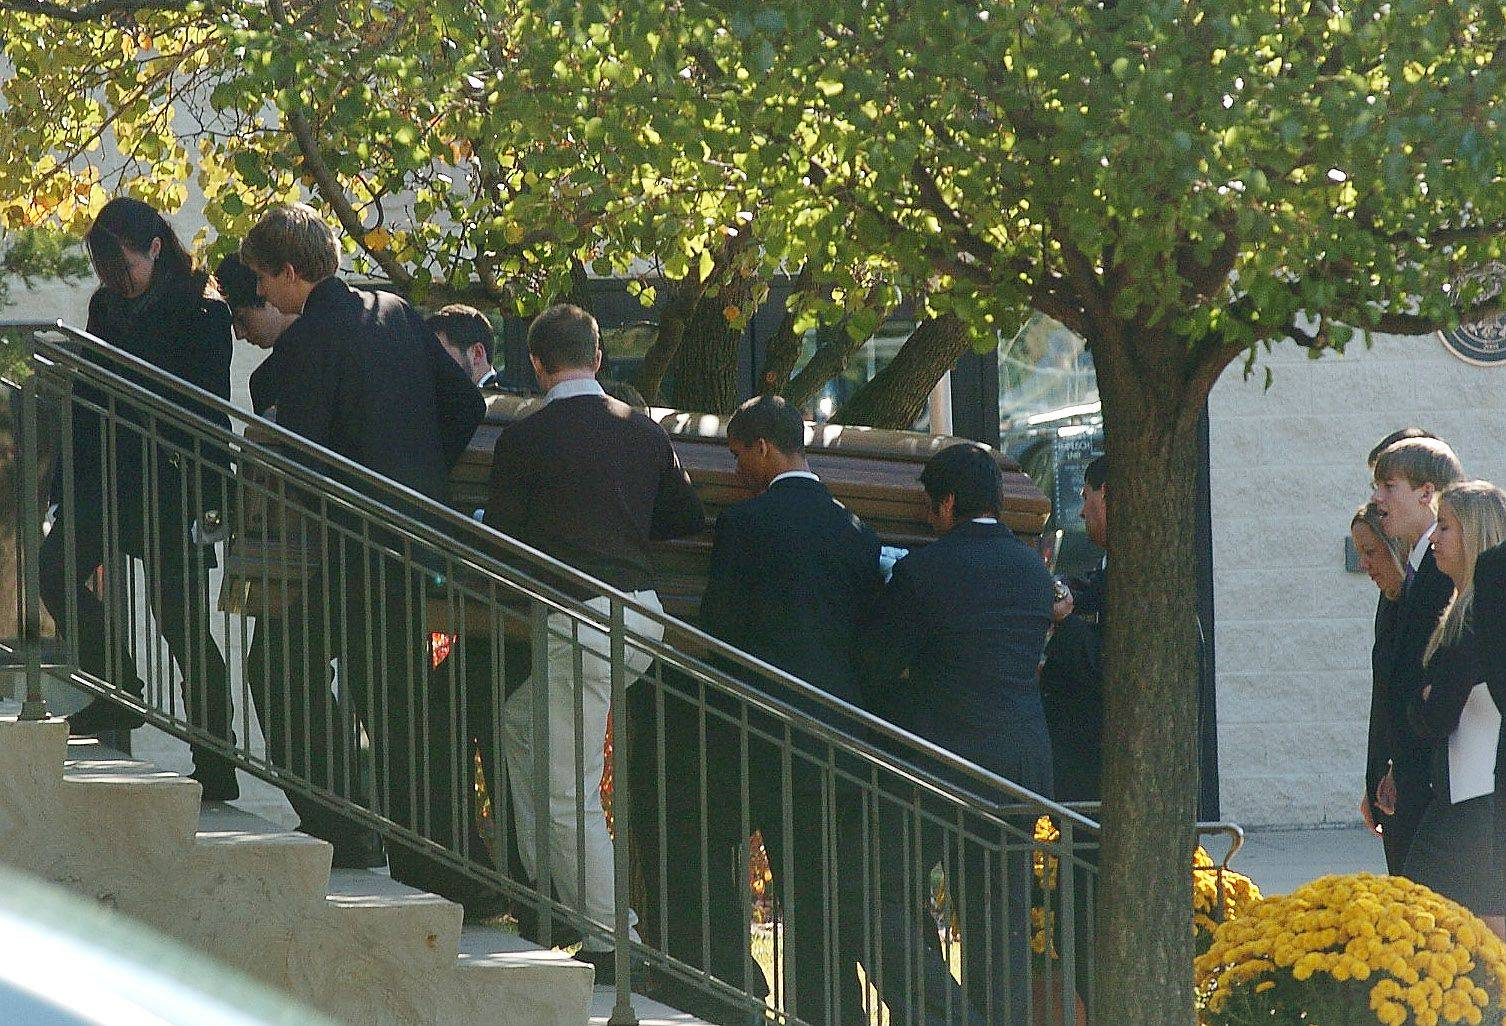 The body of Declan Sullivan is carried into St. Mary Catholic Church in Buffalo Grove for a funeral Mass.